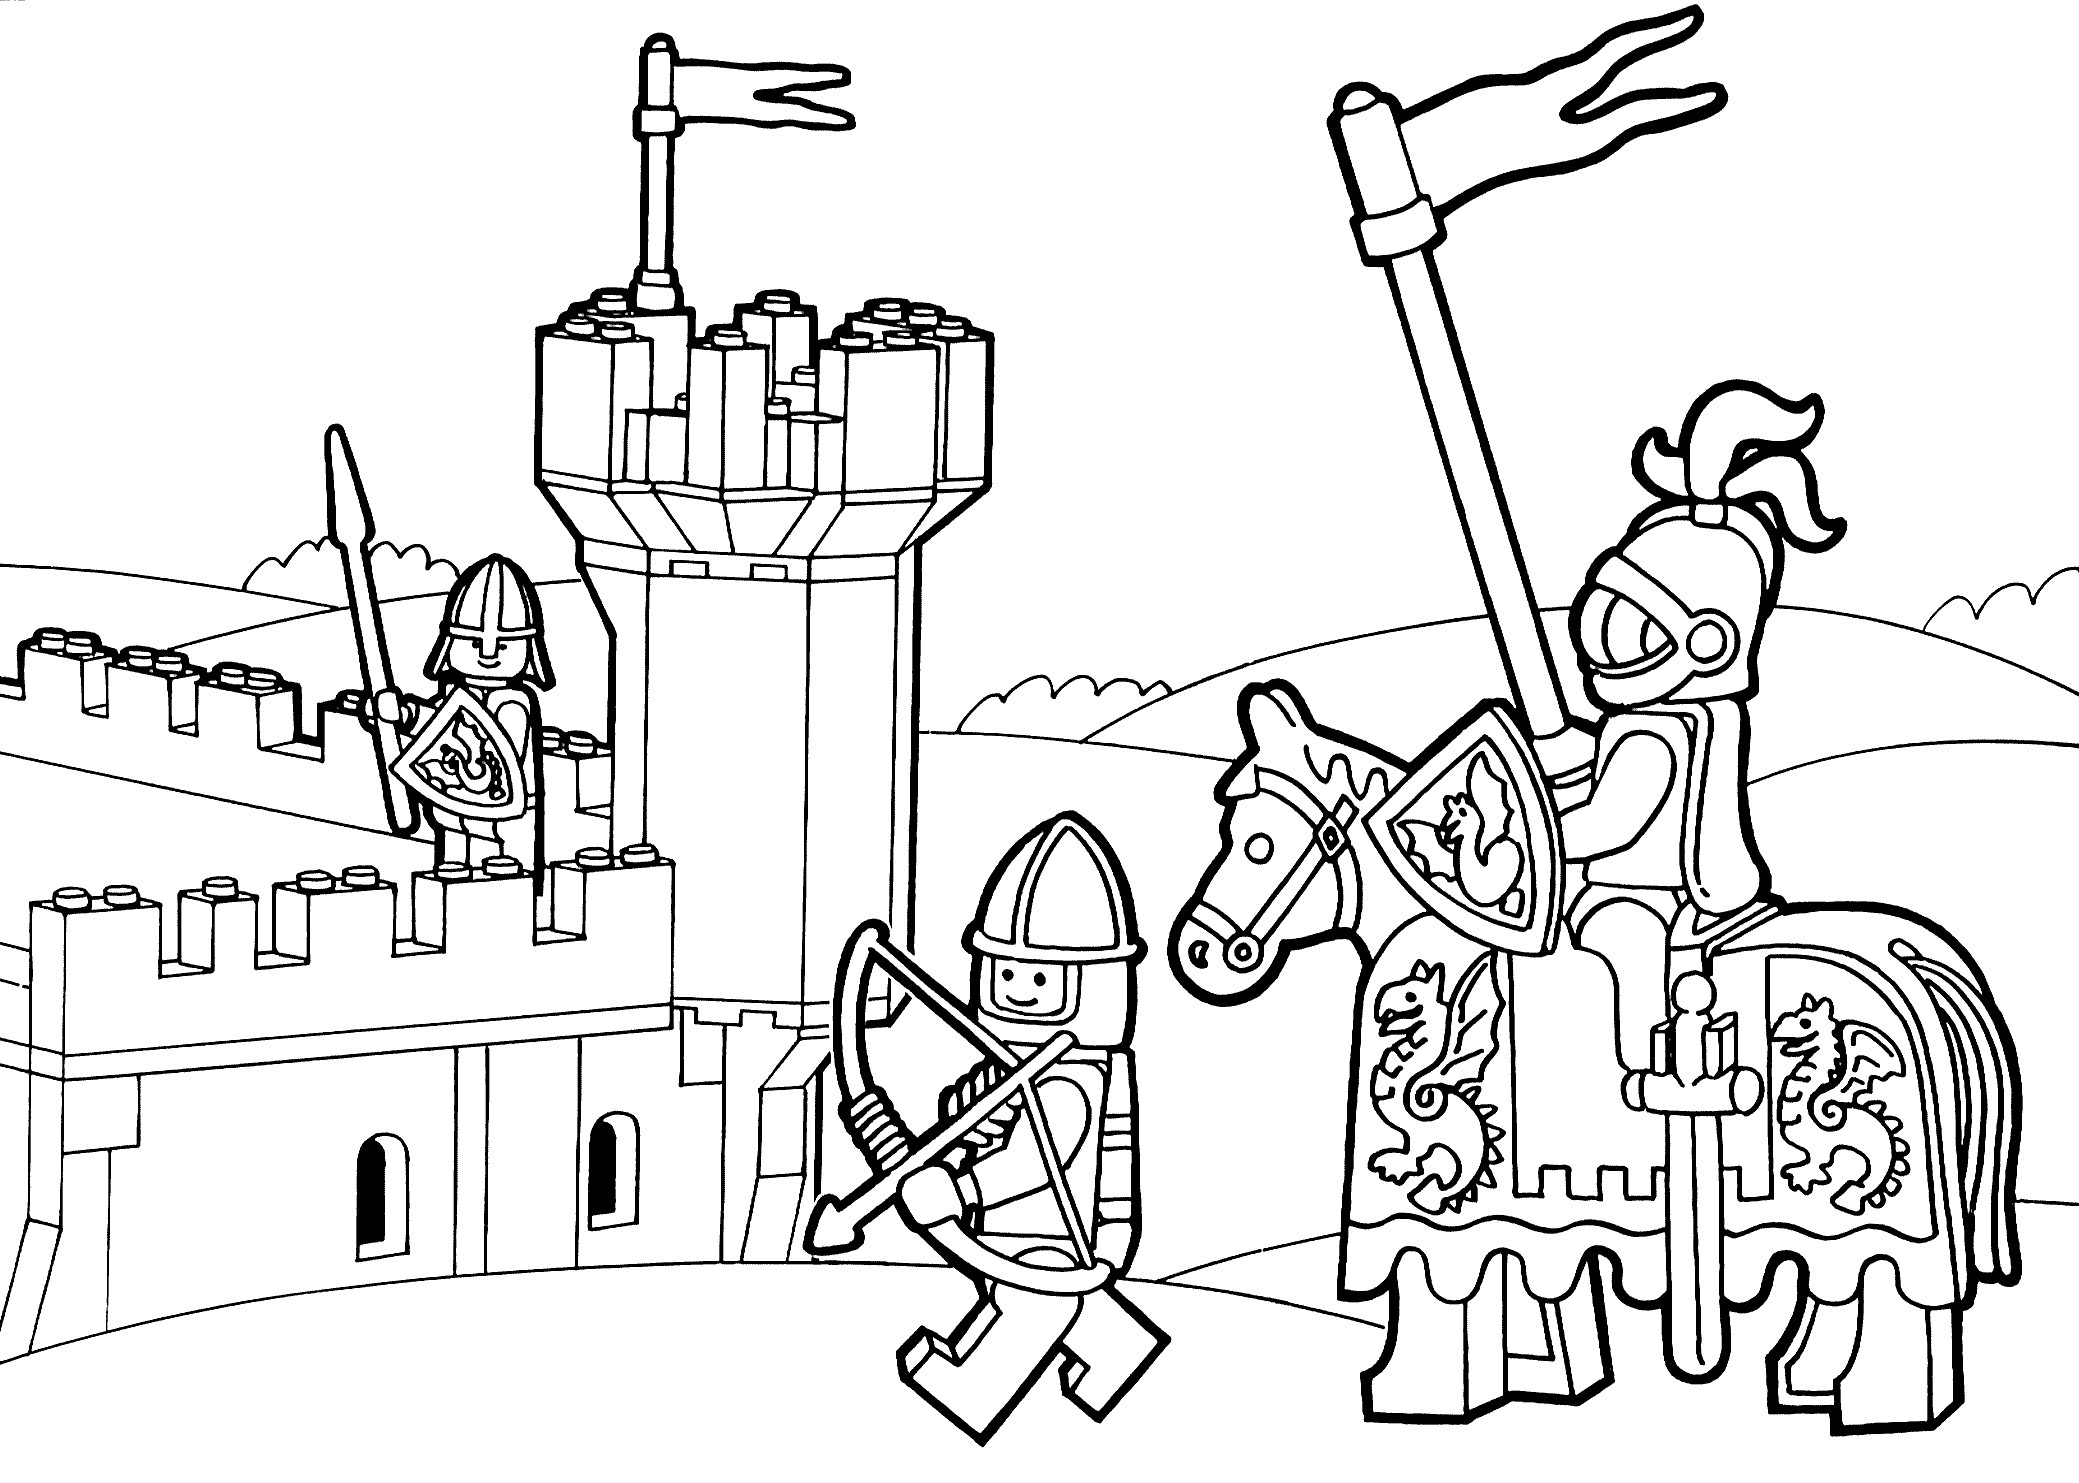 2079x1483 Lego Bridge Coloring Page For Kids Beautiful Lego Duplo Coloring